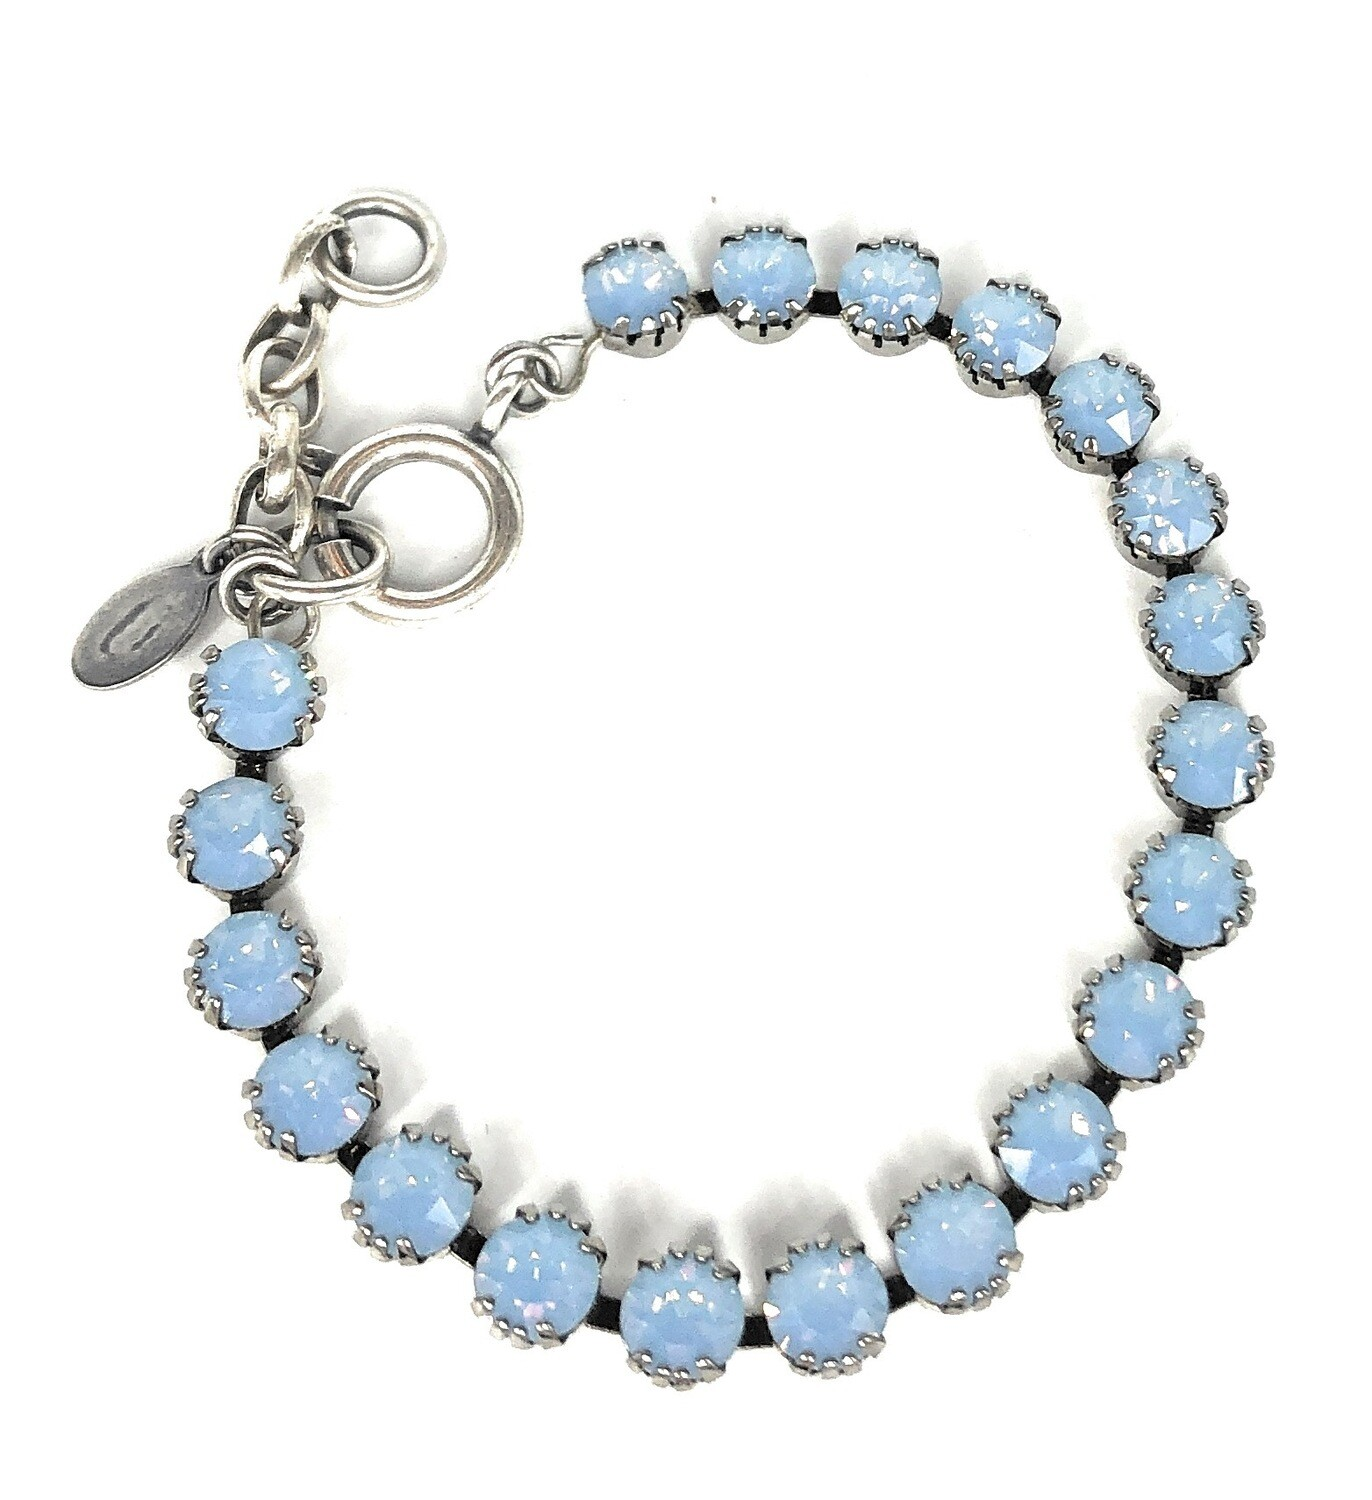 TENNIS BRACELET Silver With Air-Blue Swarovski Crysal